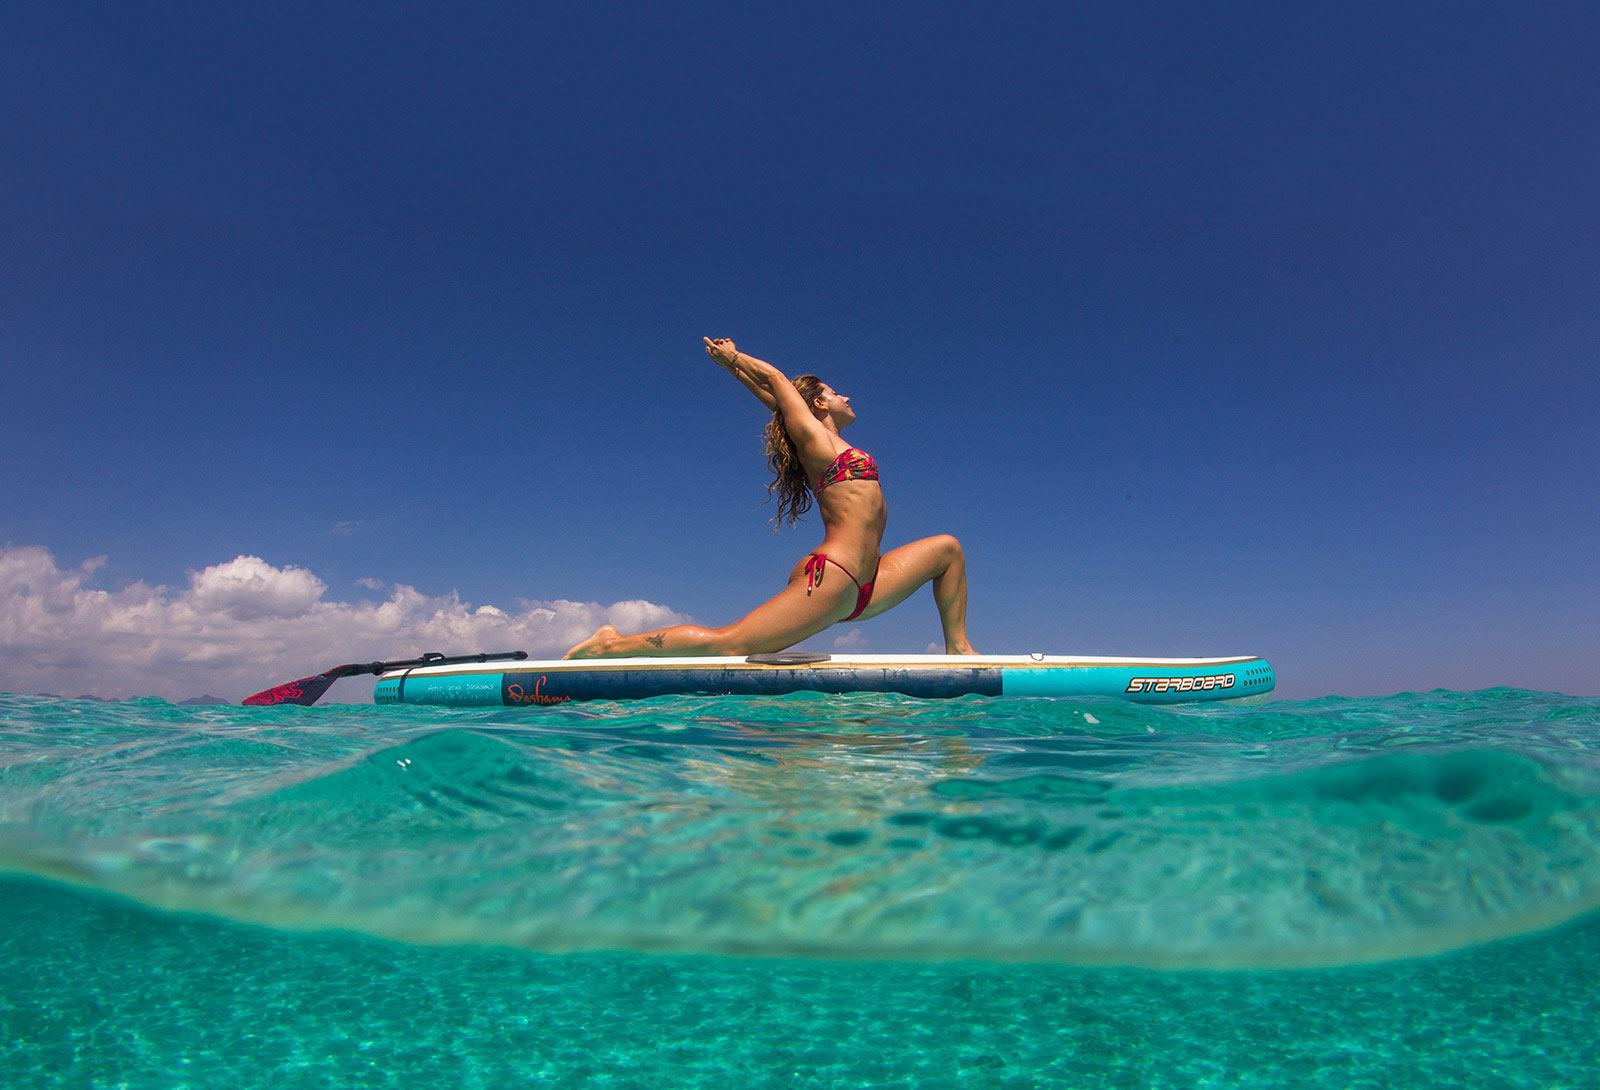 Sup stand up paddle surfing sup italia stand up paddle - Tipi di tavole da surf ...